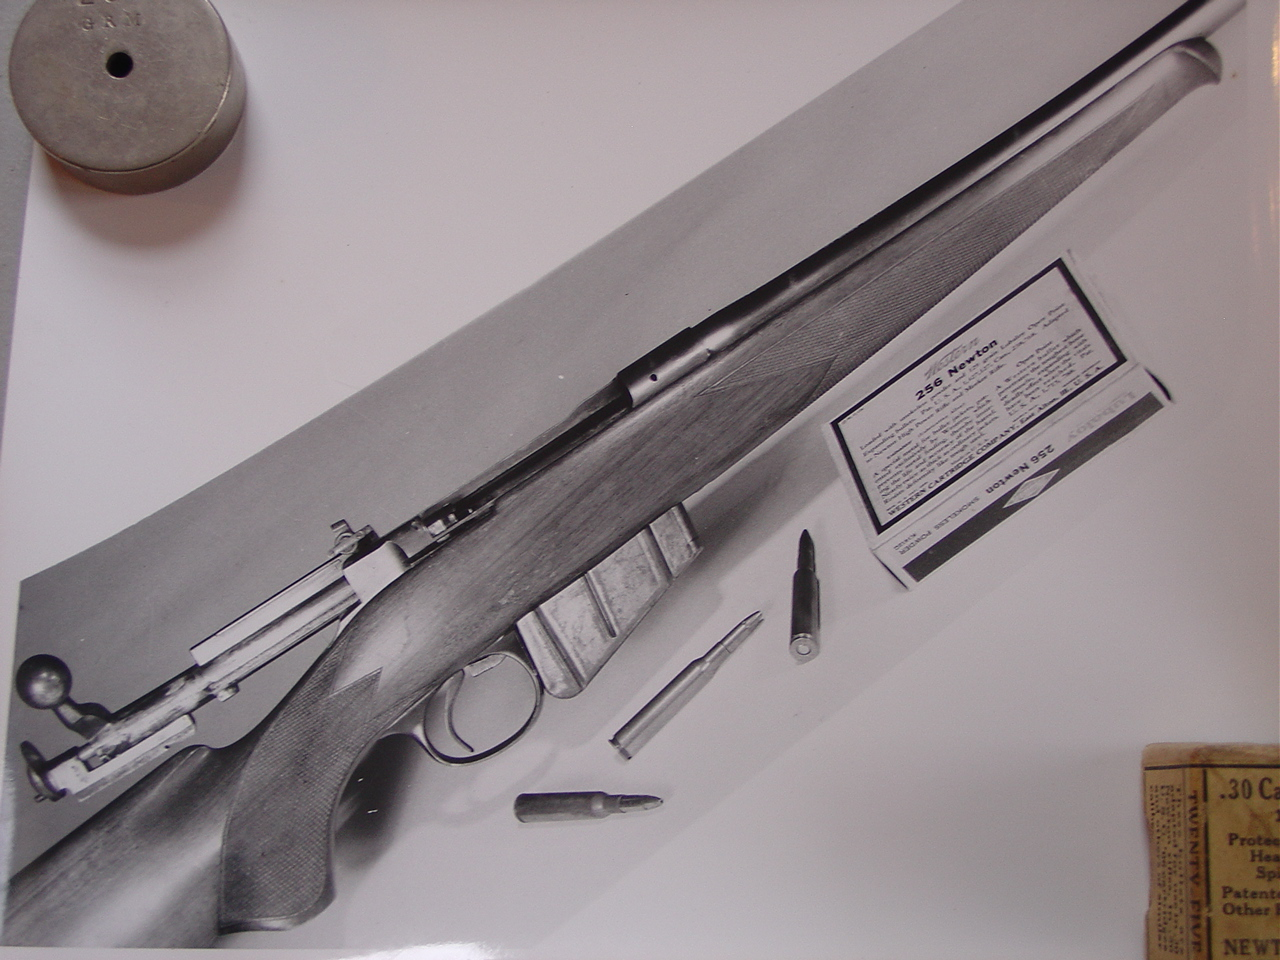 A Newton rifle in .256 Newton built on a Lee action. This would be one fast reloading high capacity gem of a rifle. (Picture courtesy iroquoisarmscollectors.org).